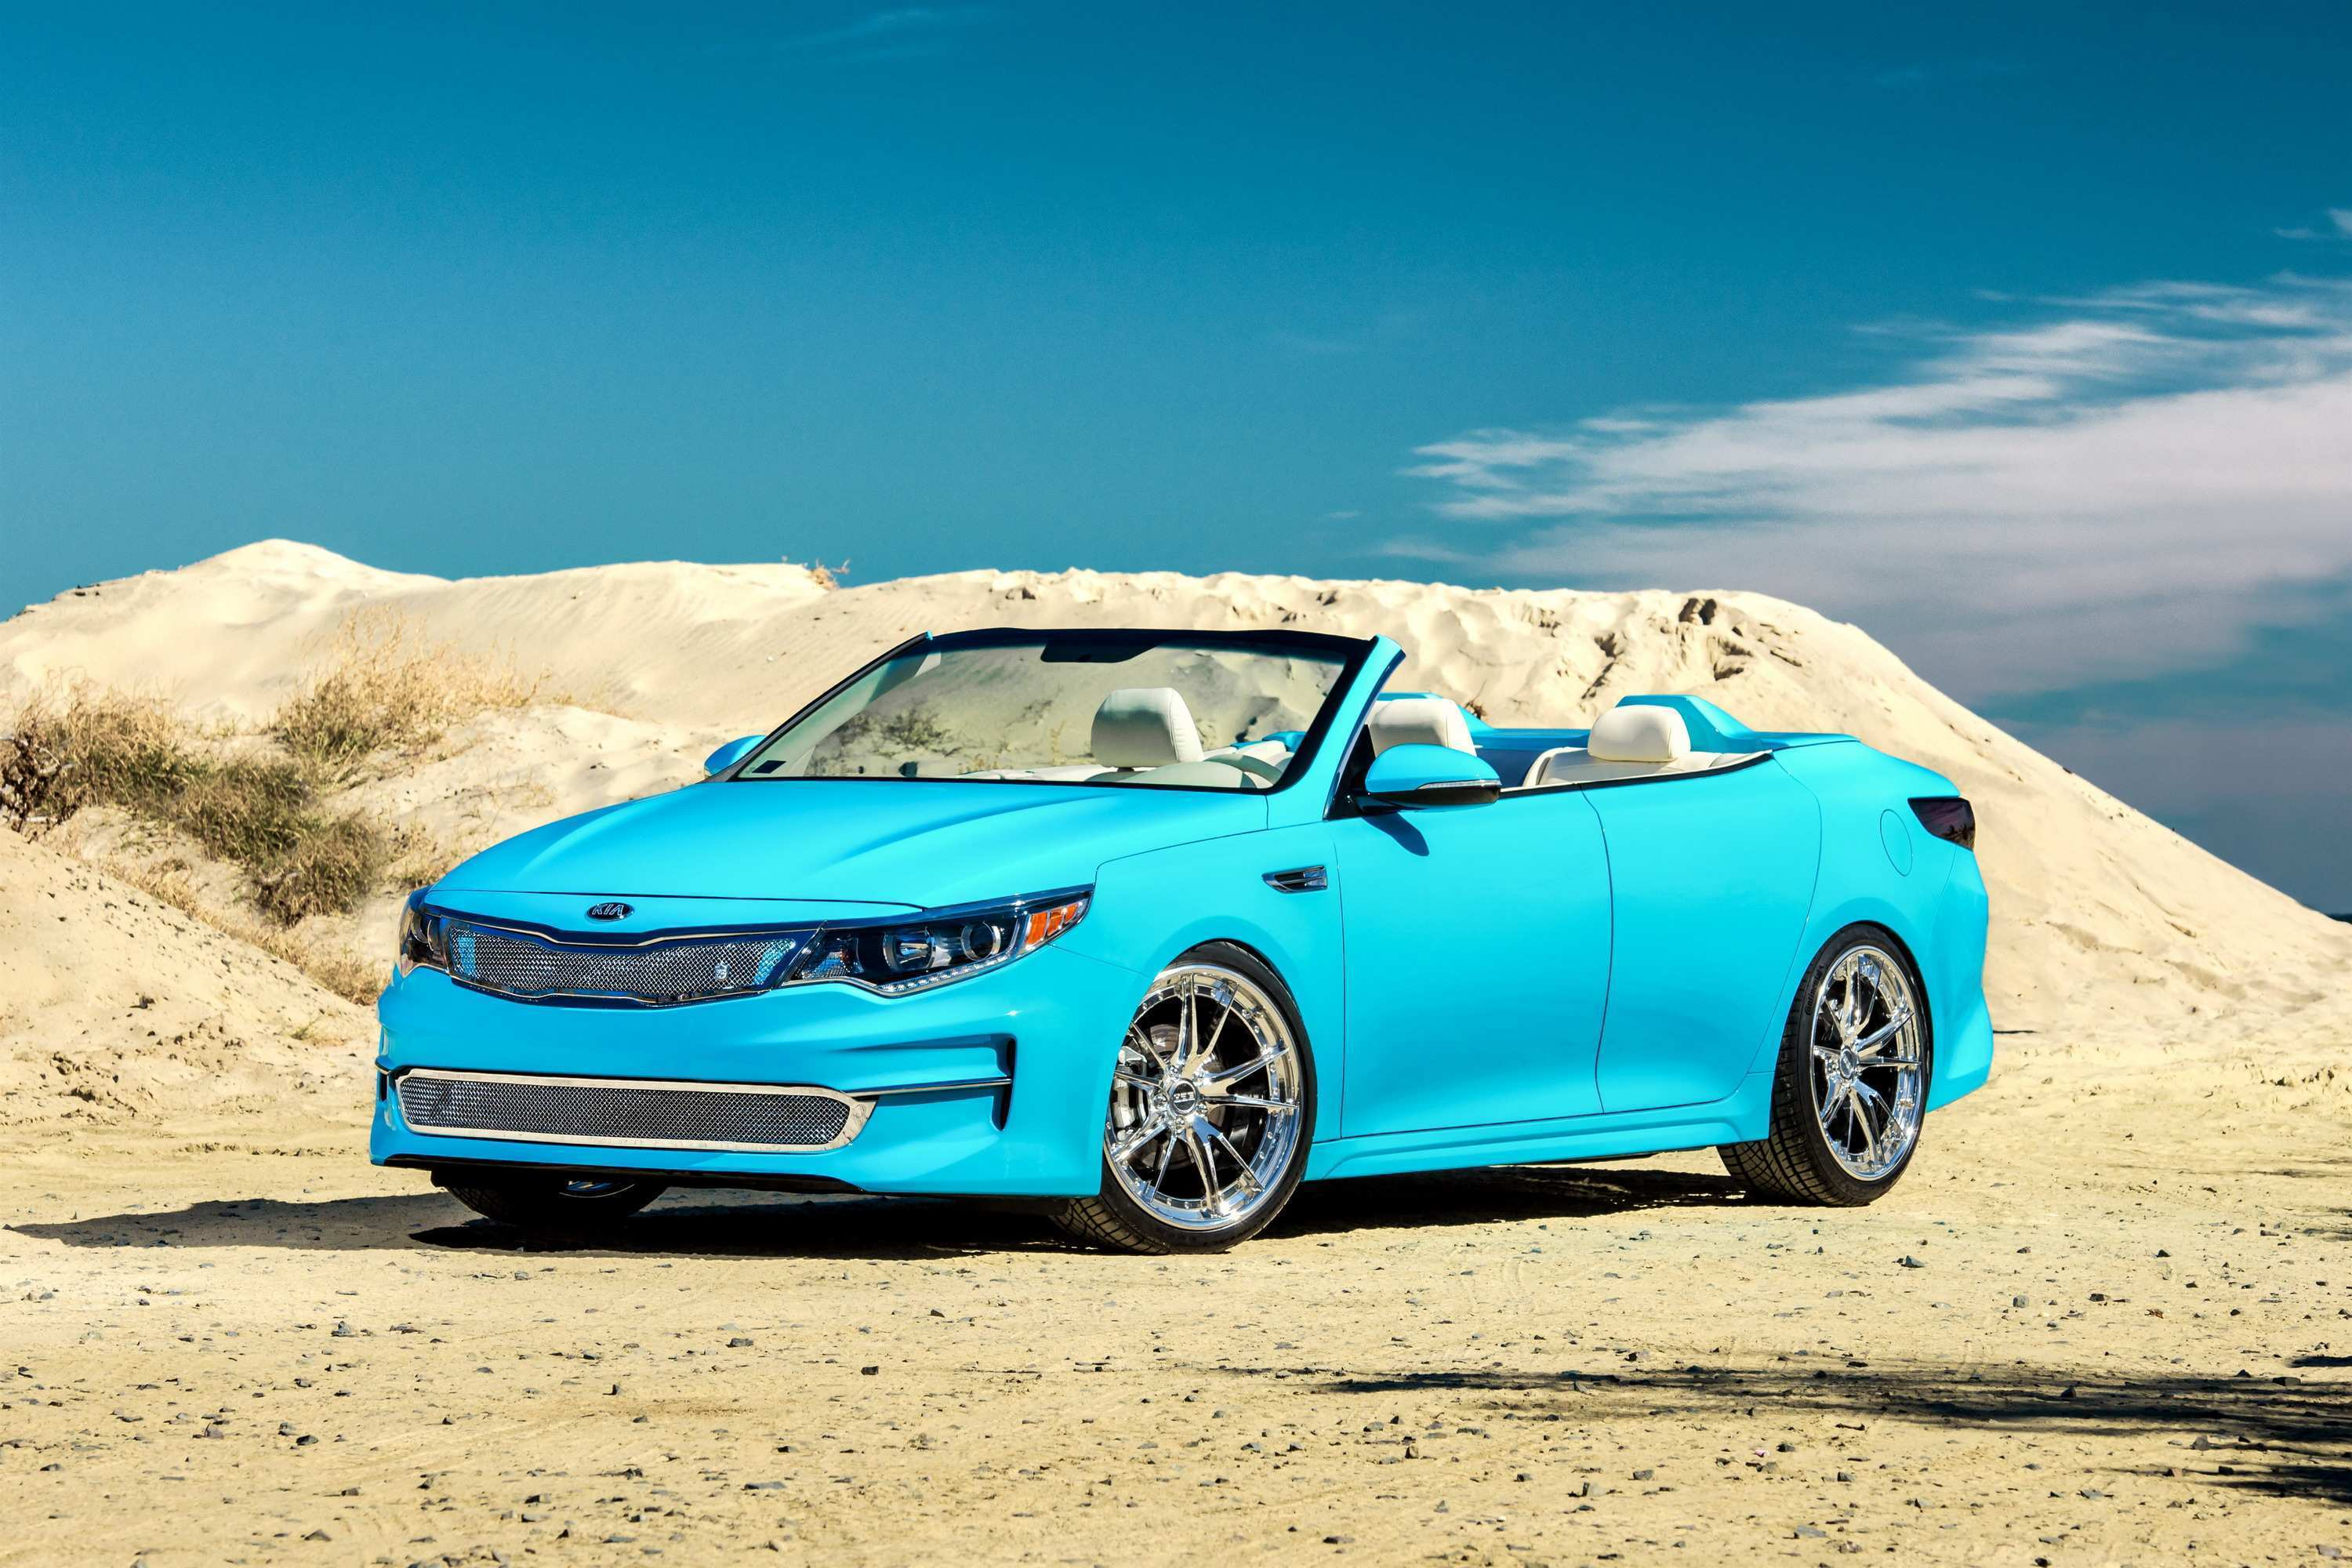 32 Gallery of Kia Optima 2020 New Concept Review with Kia Optima 2020 New Concept